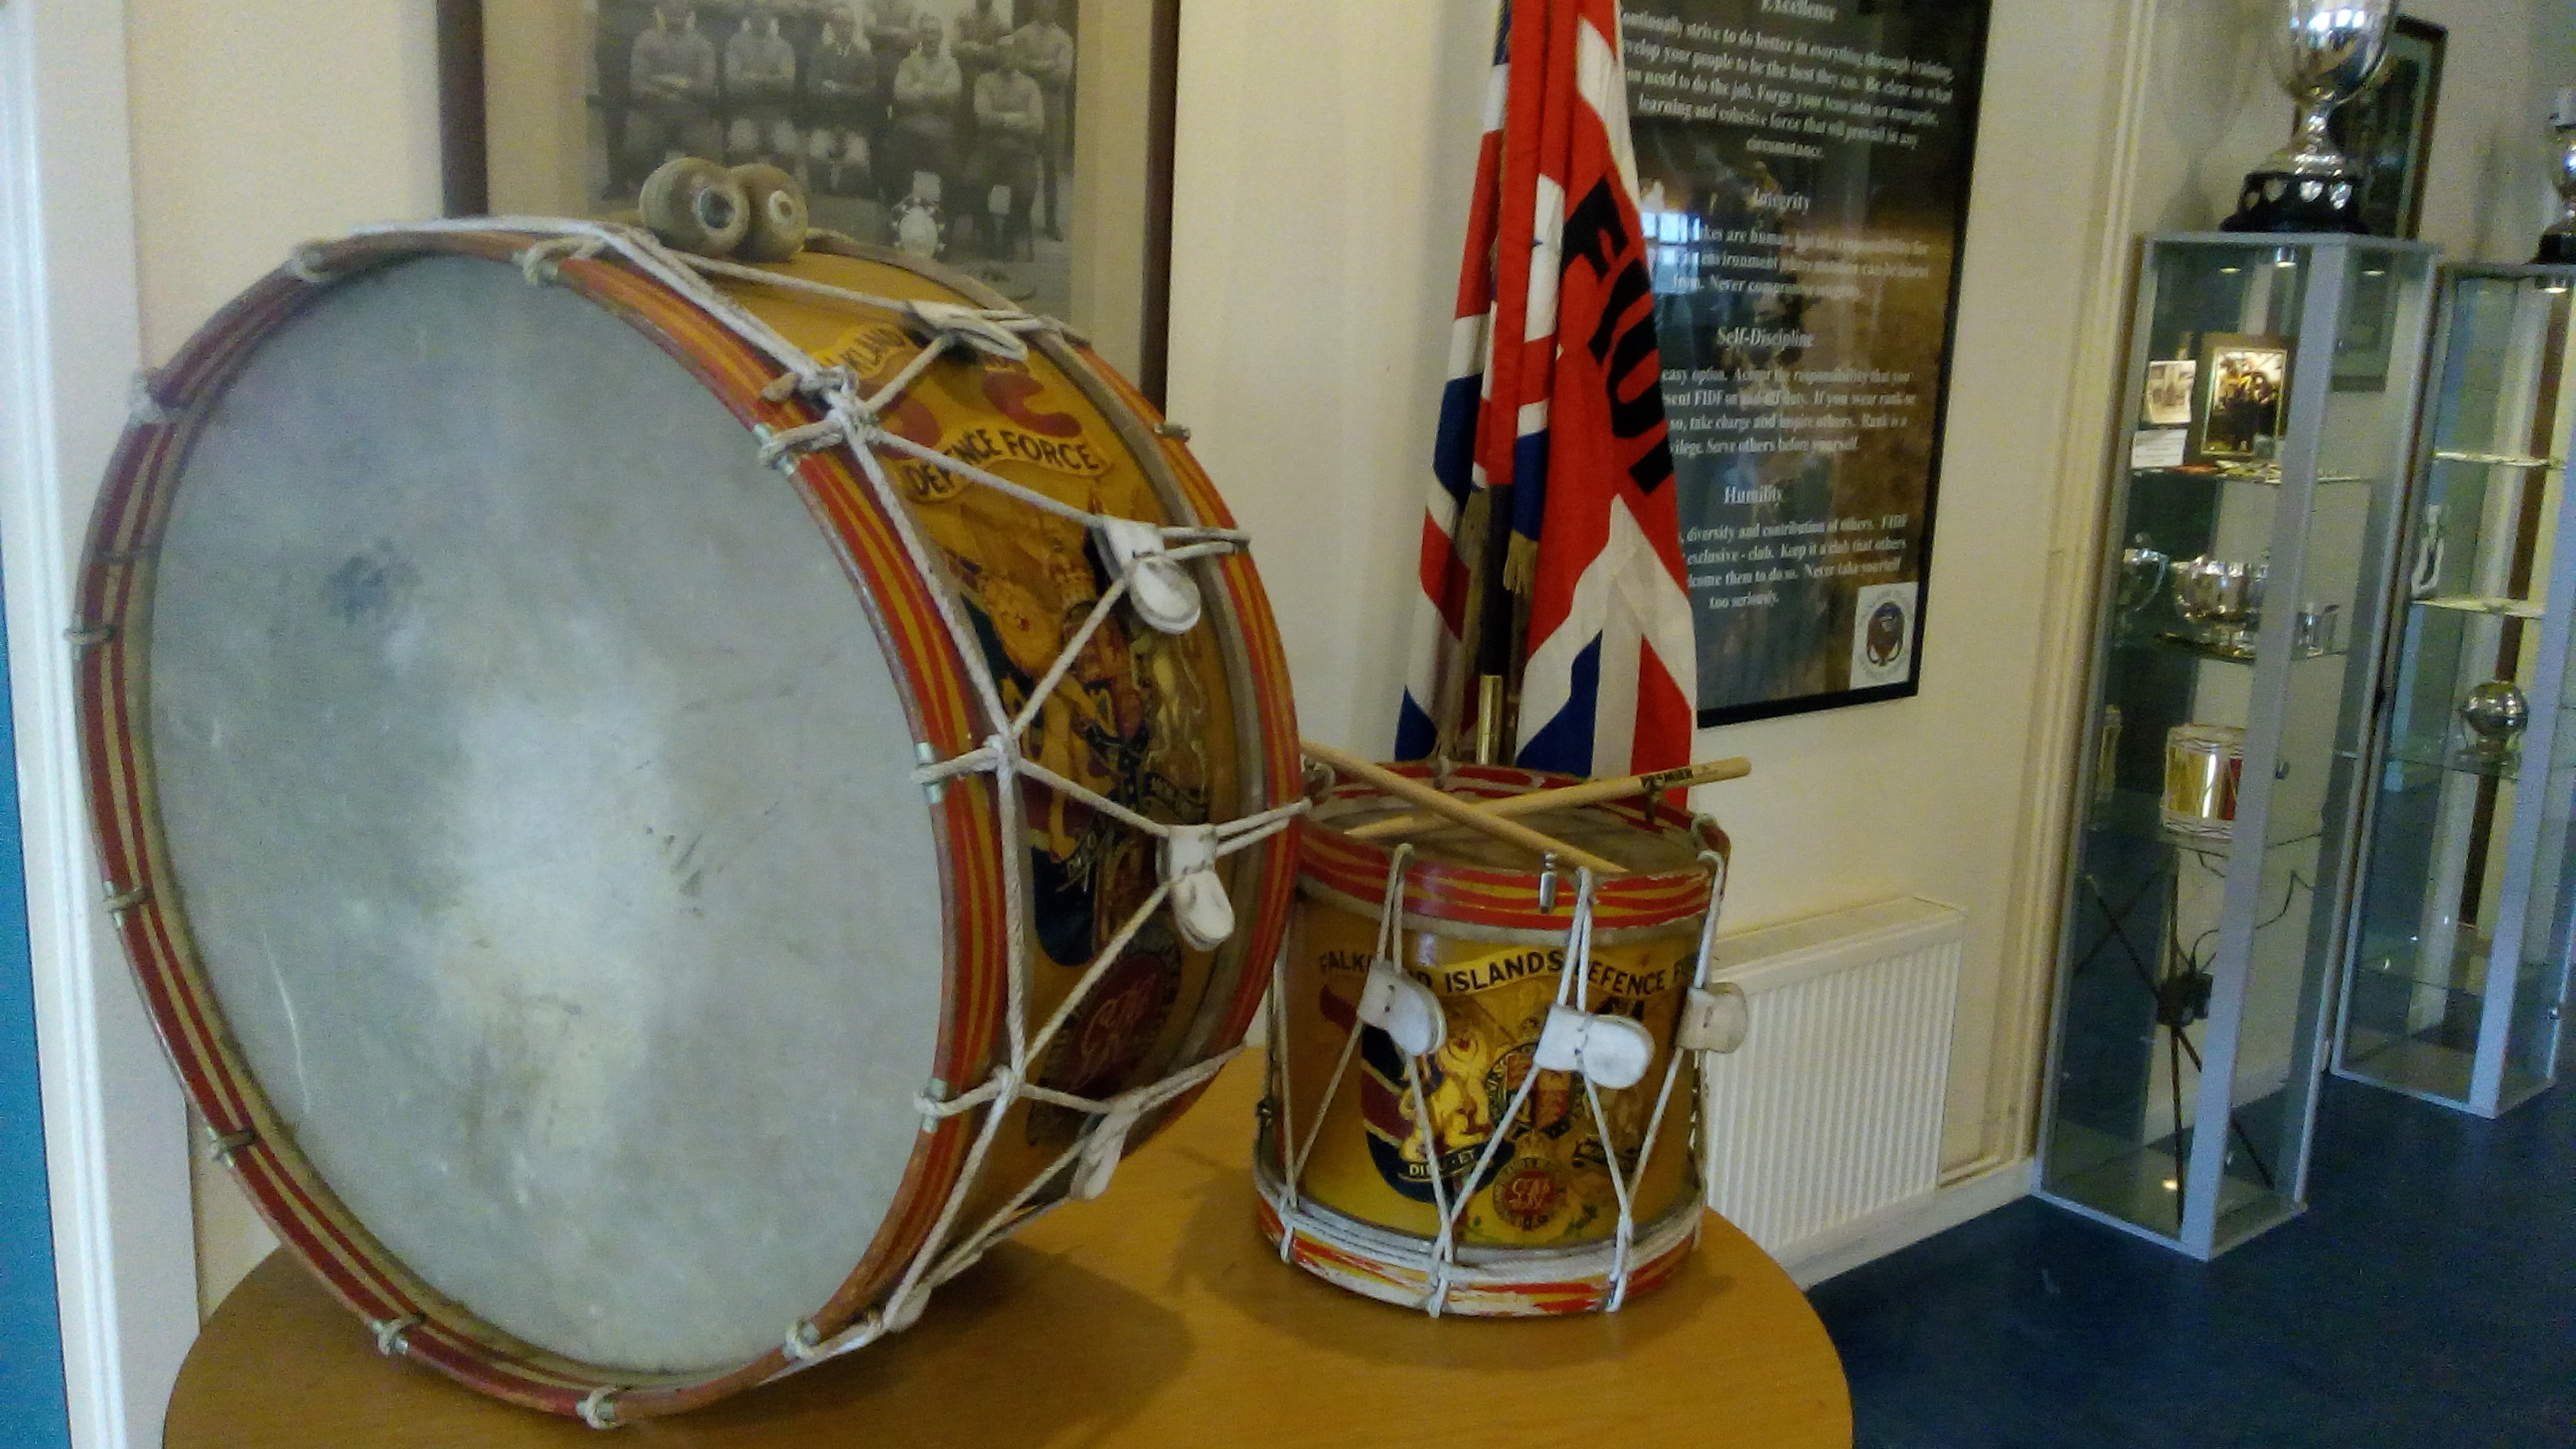 Celebrating 100 Years of the Falkland Islands Defence Force - Reception